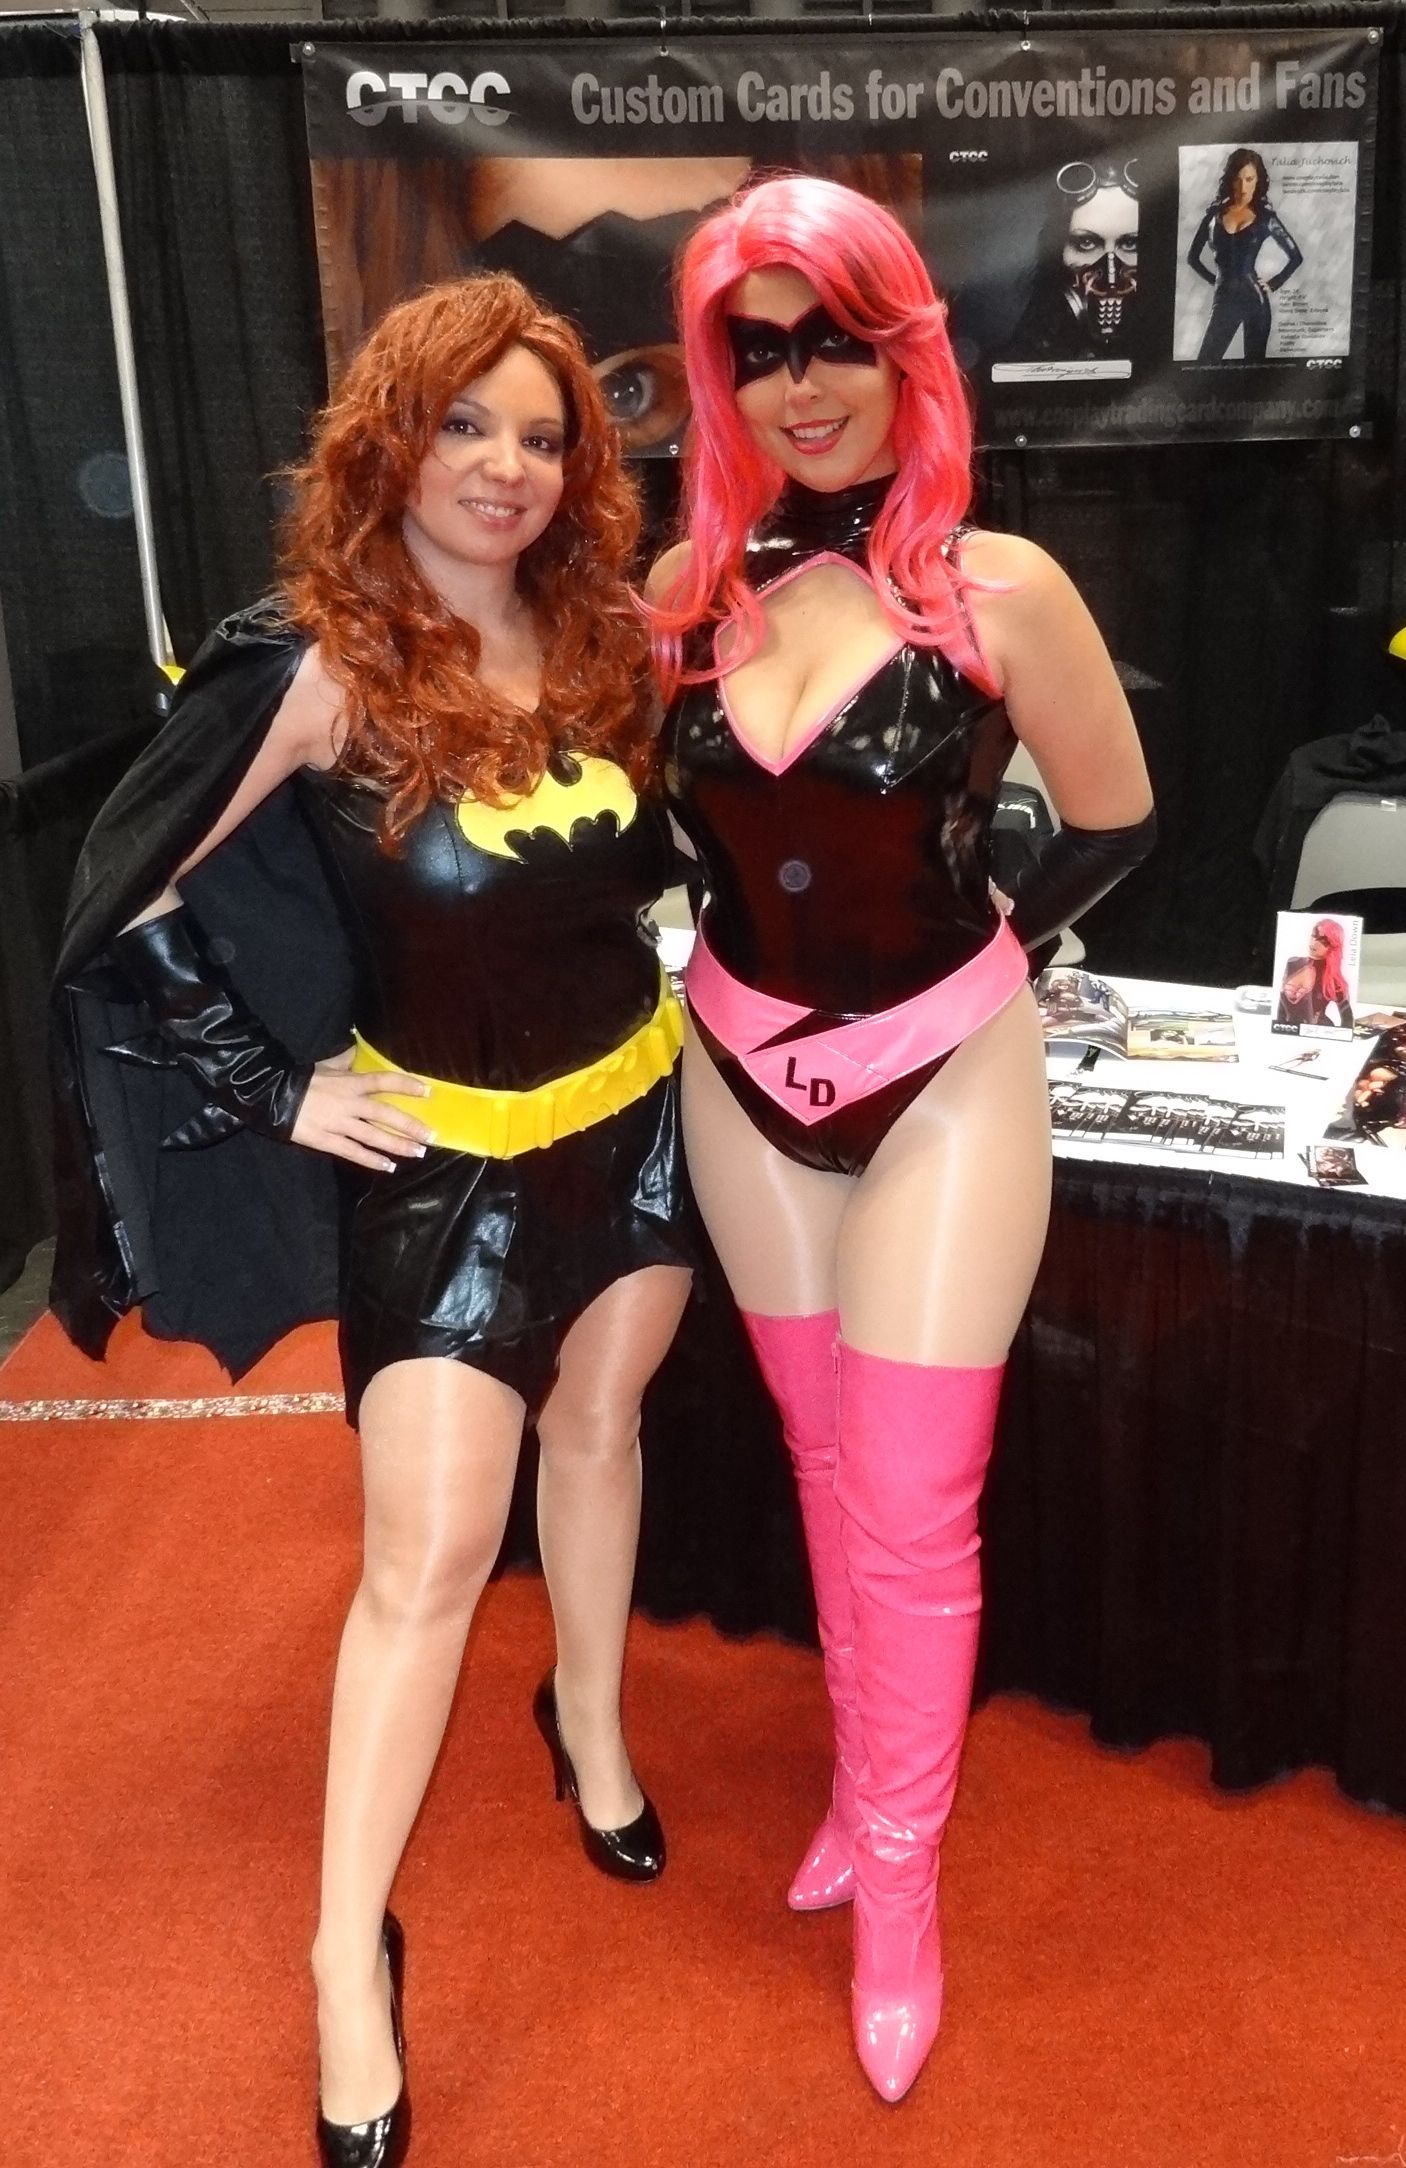 Comic Book Characters Kiki Daire And Leia Down Promoting Their Own Comic Book